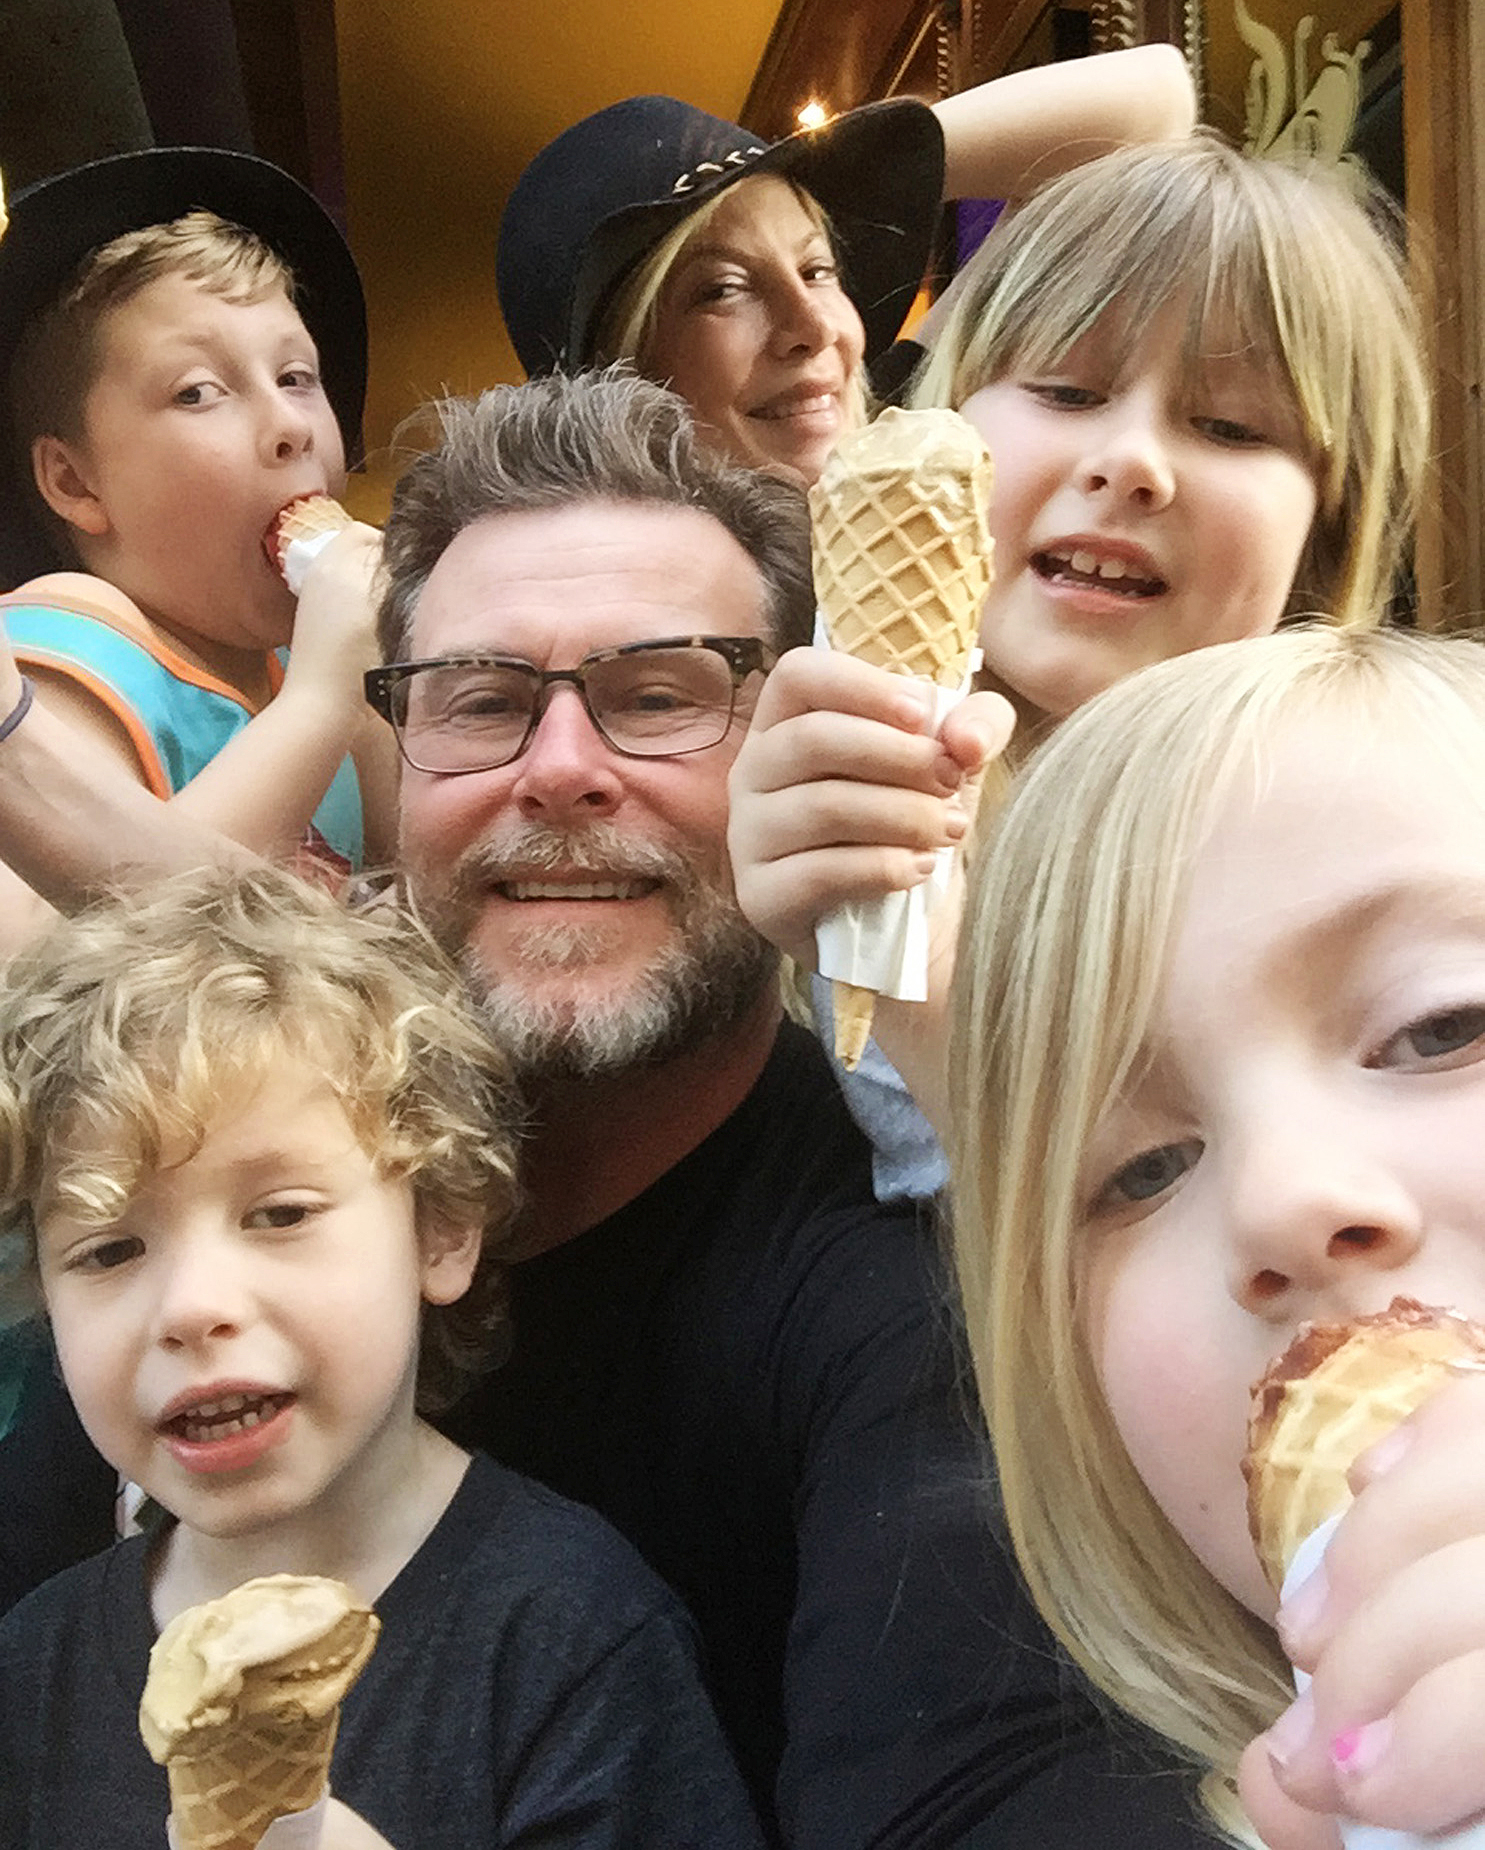 Tori Spelling Dean McDermott Liam Stella Hattie Finn ice cream Paris - Tori Spelling has lived her life in the public eye. The actress has shared photos through the years of her family life, starting out with her upbringing with her famous parents Aaron and Candy Spelling, to now raising kids of her own.